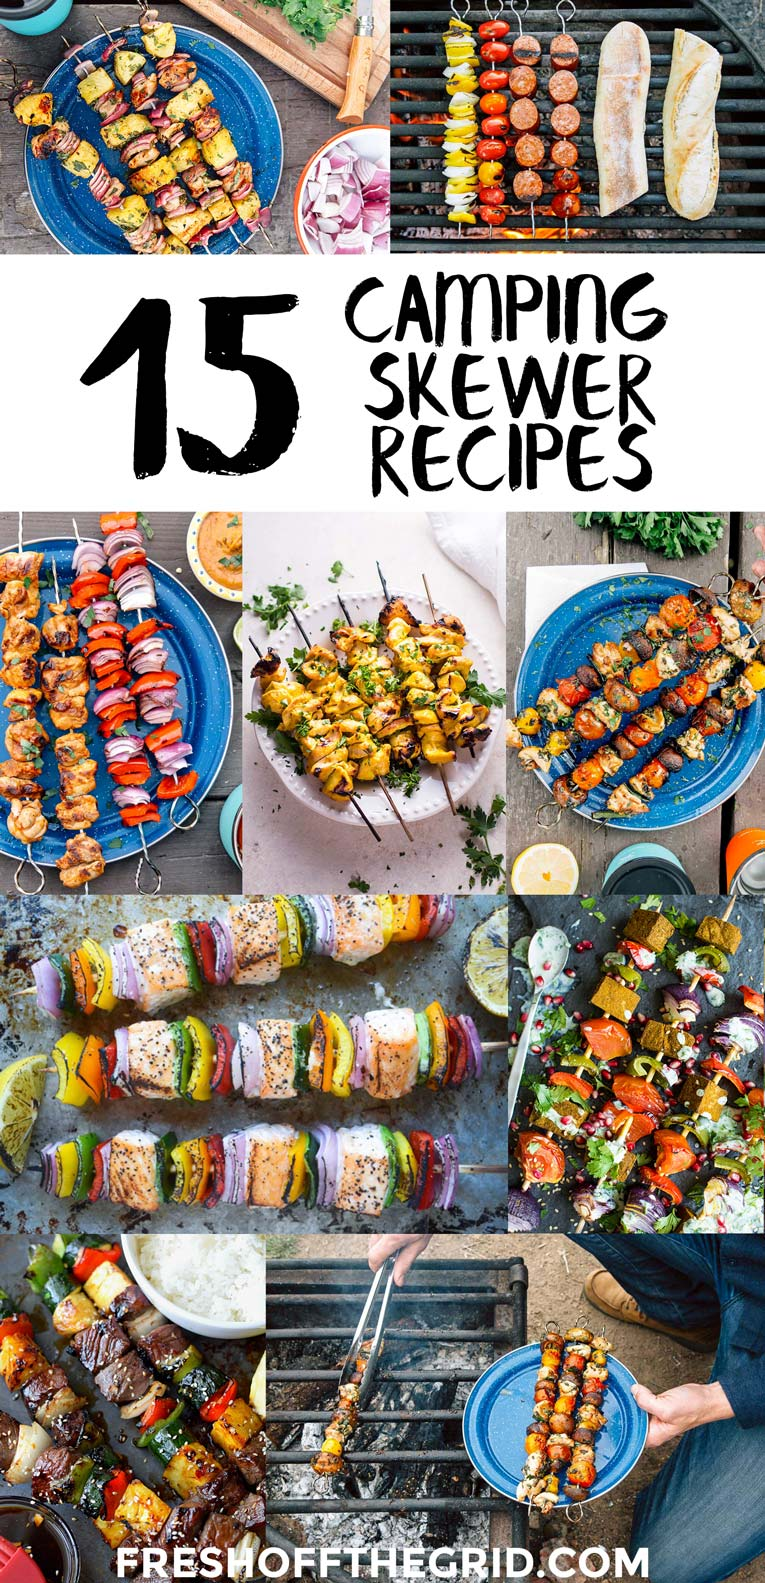 Camping skewers and grilled kabobs are a great make ahead camping meal that can easily be customized and scaled up to feed a crowd. They are fun to make and cook right on the campfire for easy cleanup. Camping food ideas | Campfire cooking | Grilled Kabob Recipes via @freshoffthegrid